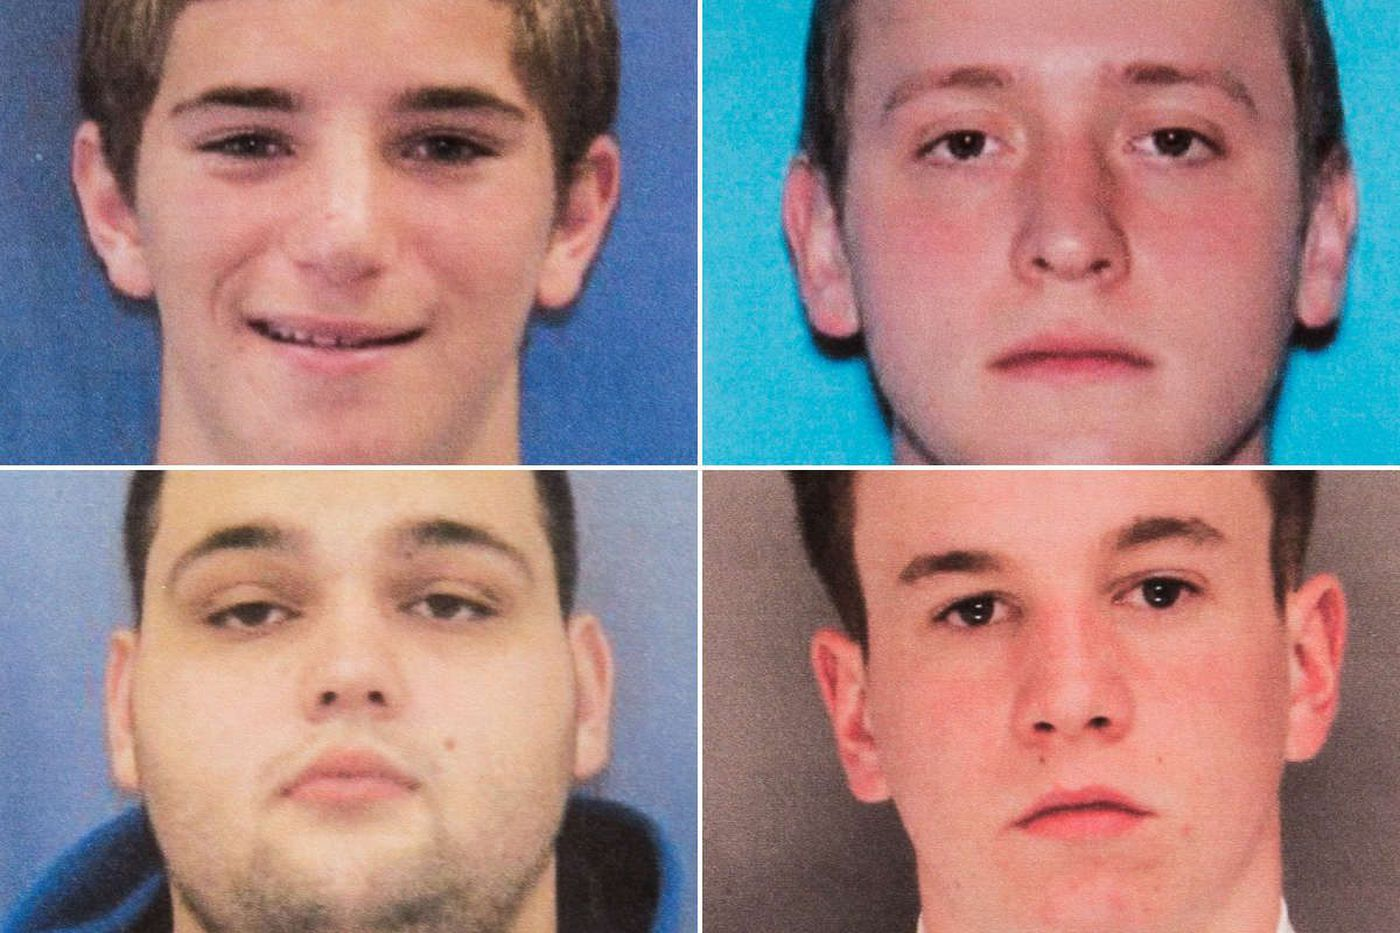 Bucks County murdered men: Who they were